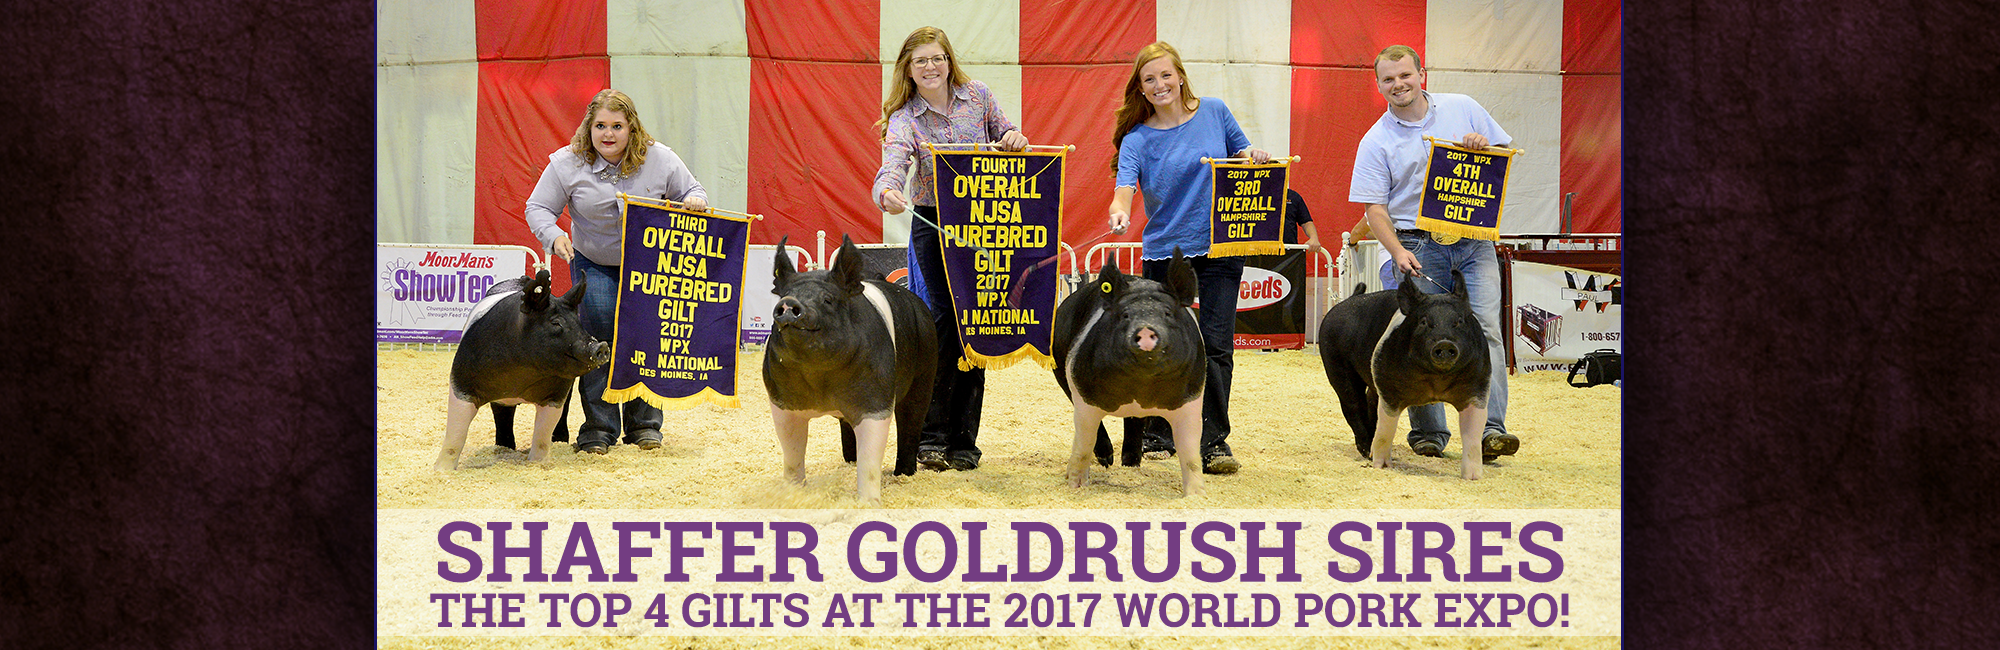 four show pig sires World Pork Expo